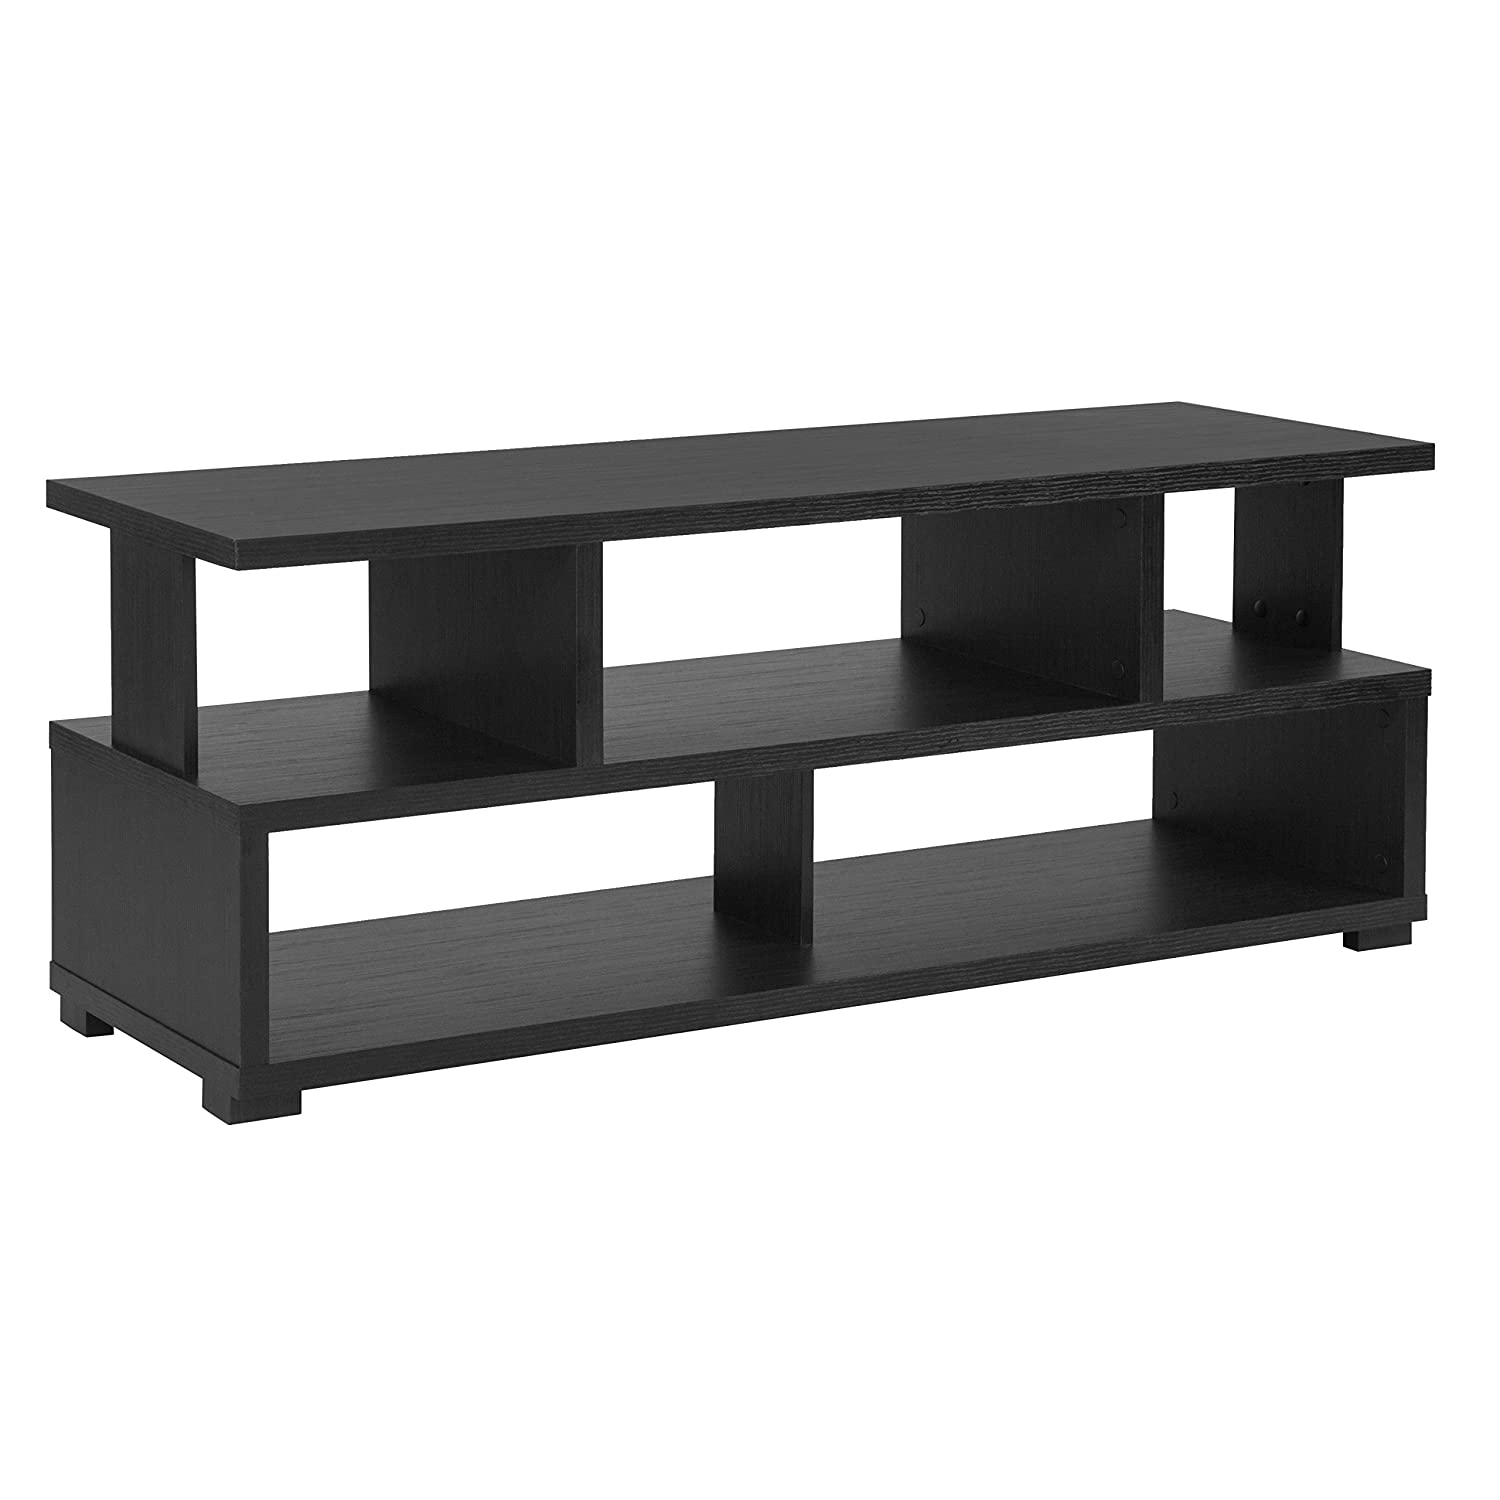 Amazon com flash furniture morristown collection 47 25w tv stand in espresso wood finish kitchen dining